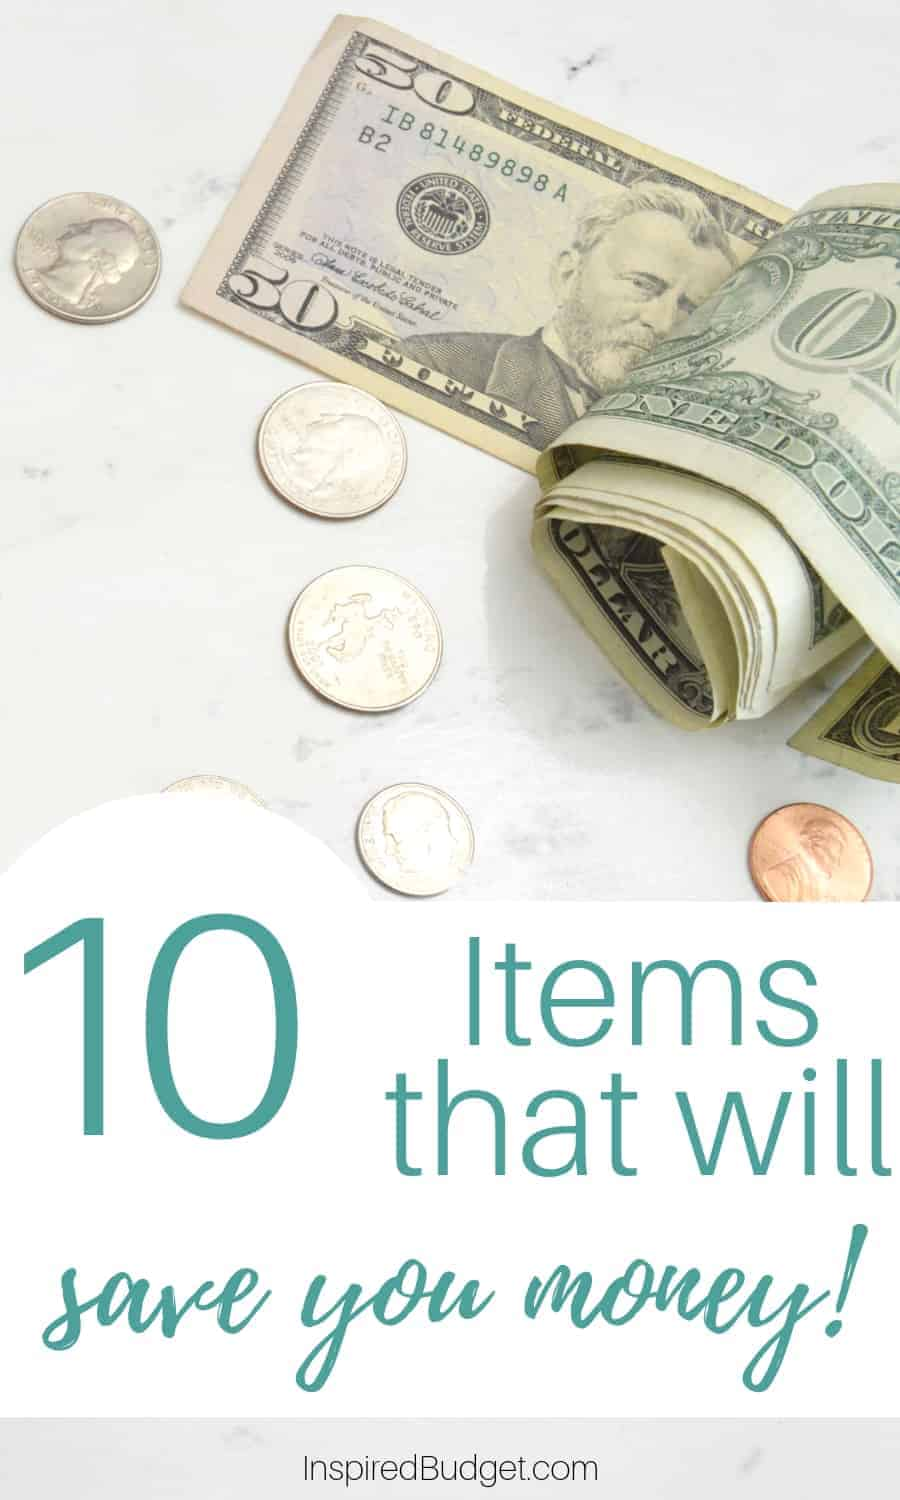 Items that will save you money image 1